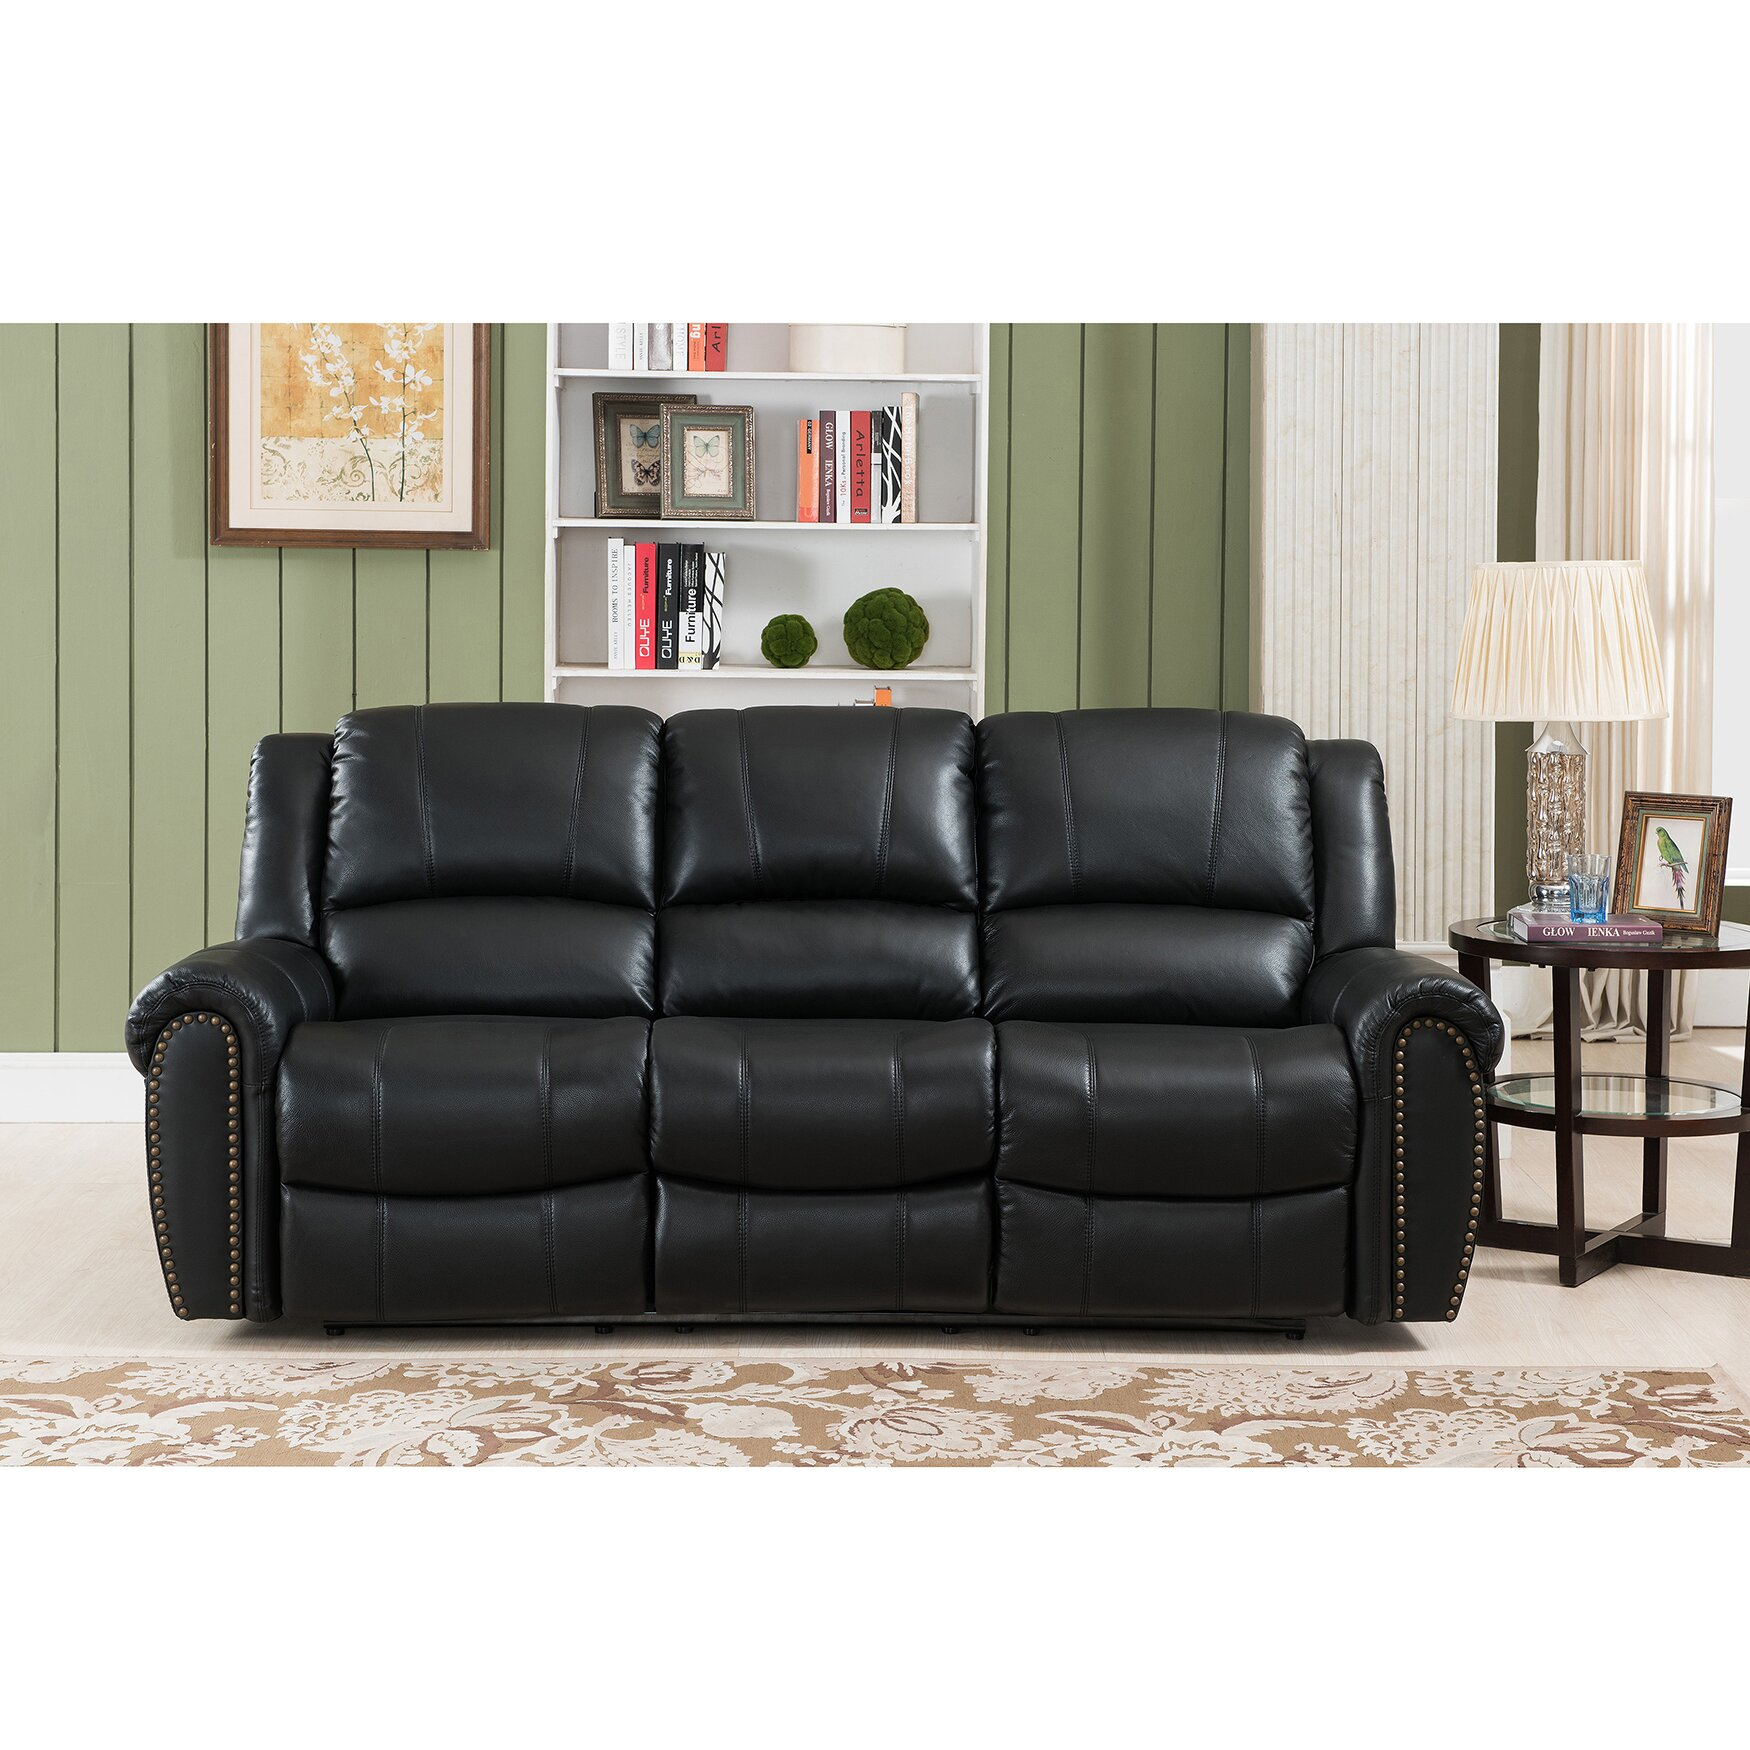 Amax Houston Leather Reclining Sofa Reviews